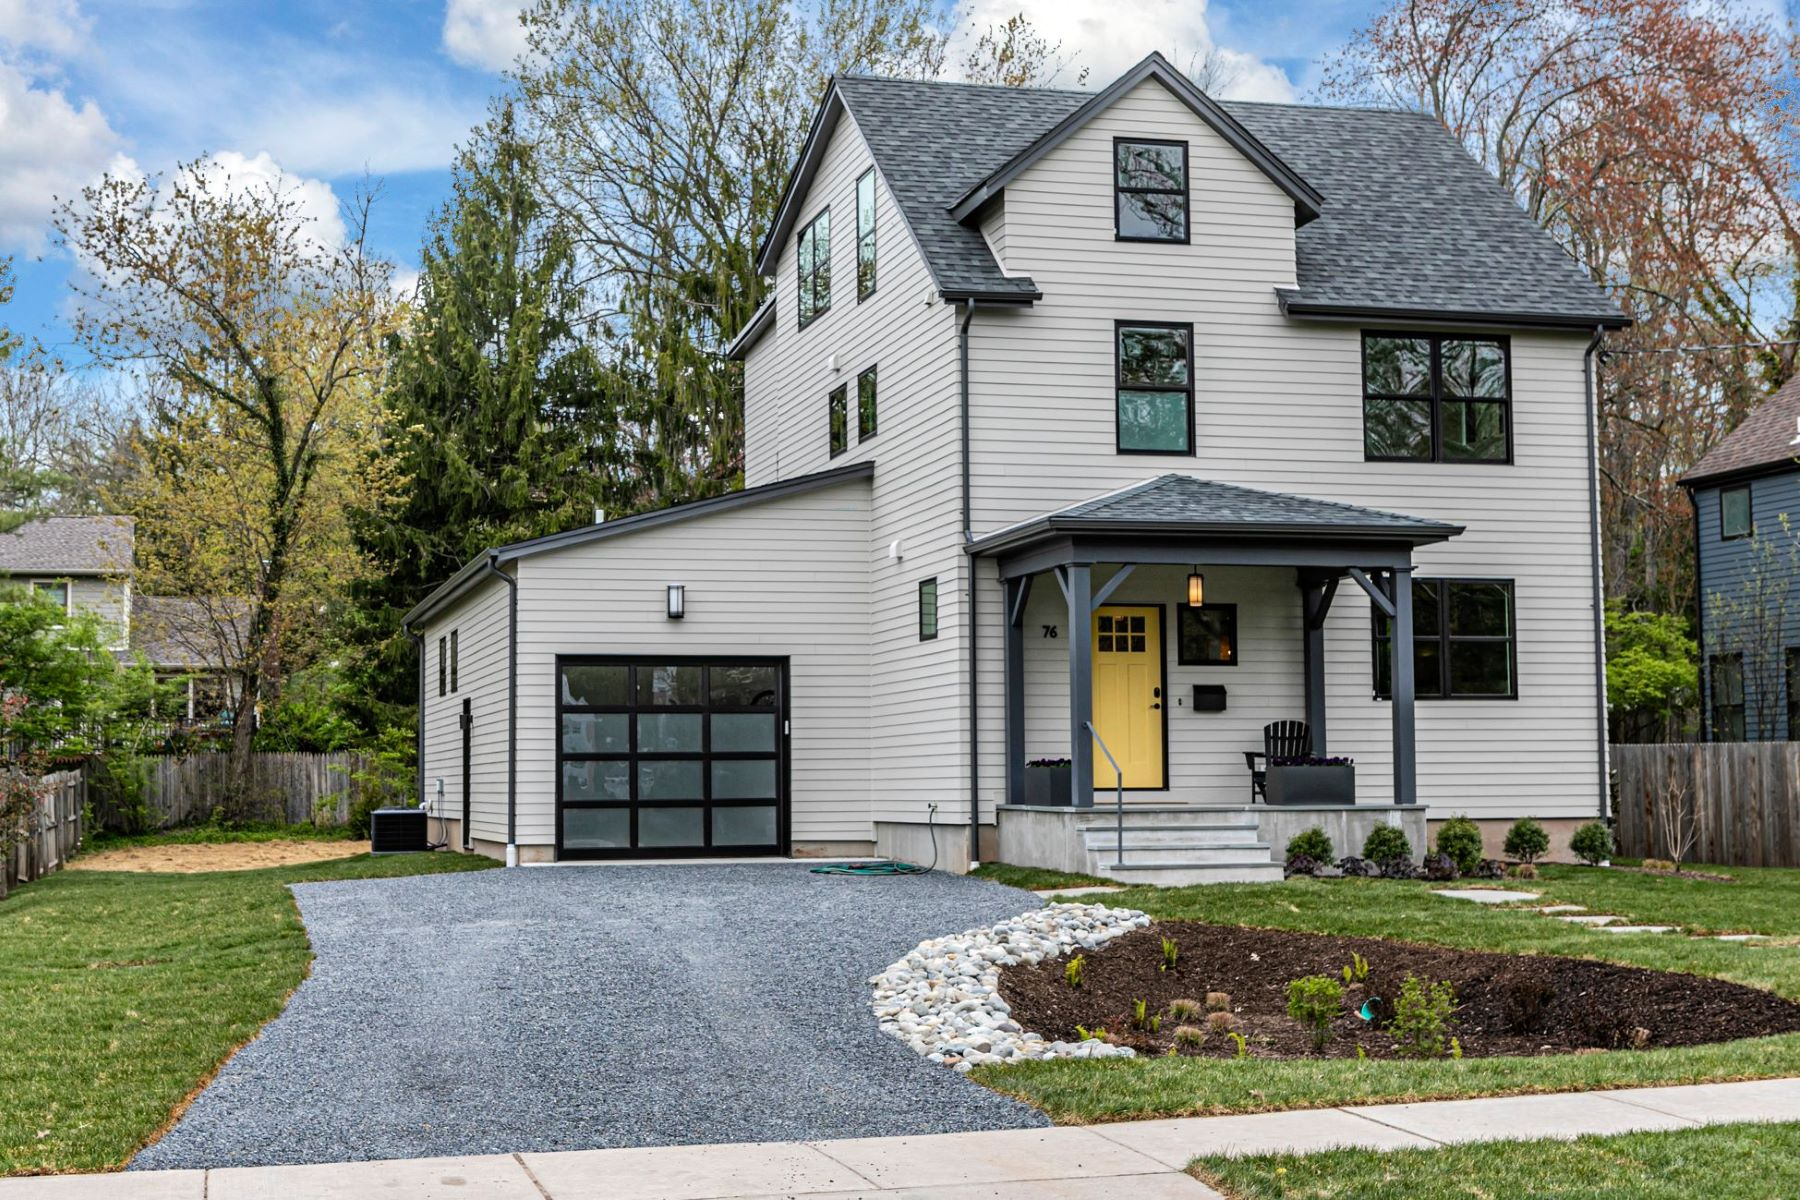 Single Family Homes için Satış at Sunny & Stylish New Home Is As Green As It Gets 76 Valley Road, Princeton, New Jersey 08540 Amerika Birleşik Devletleri